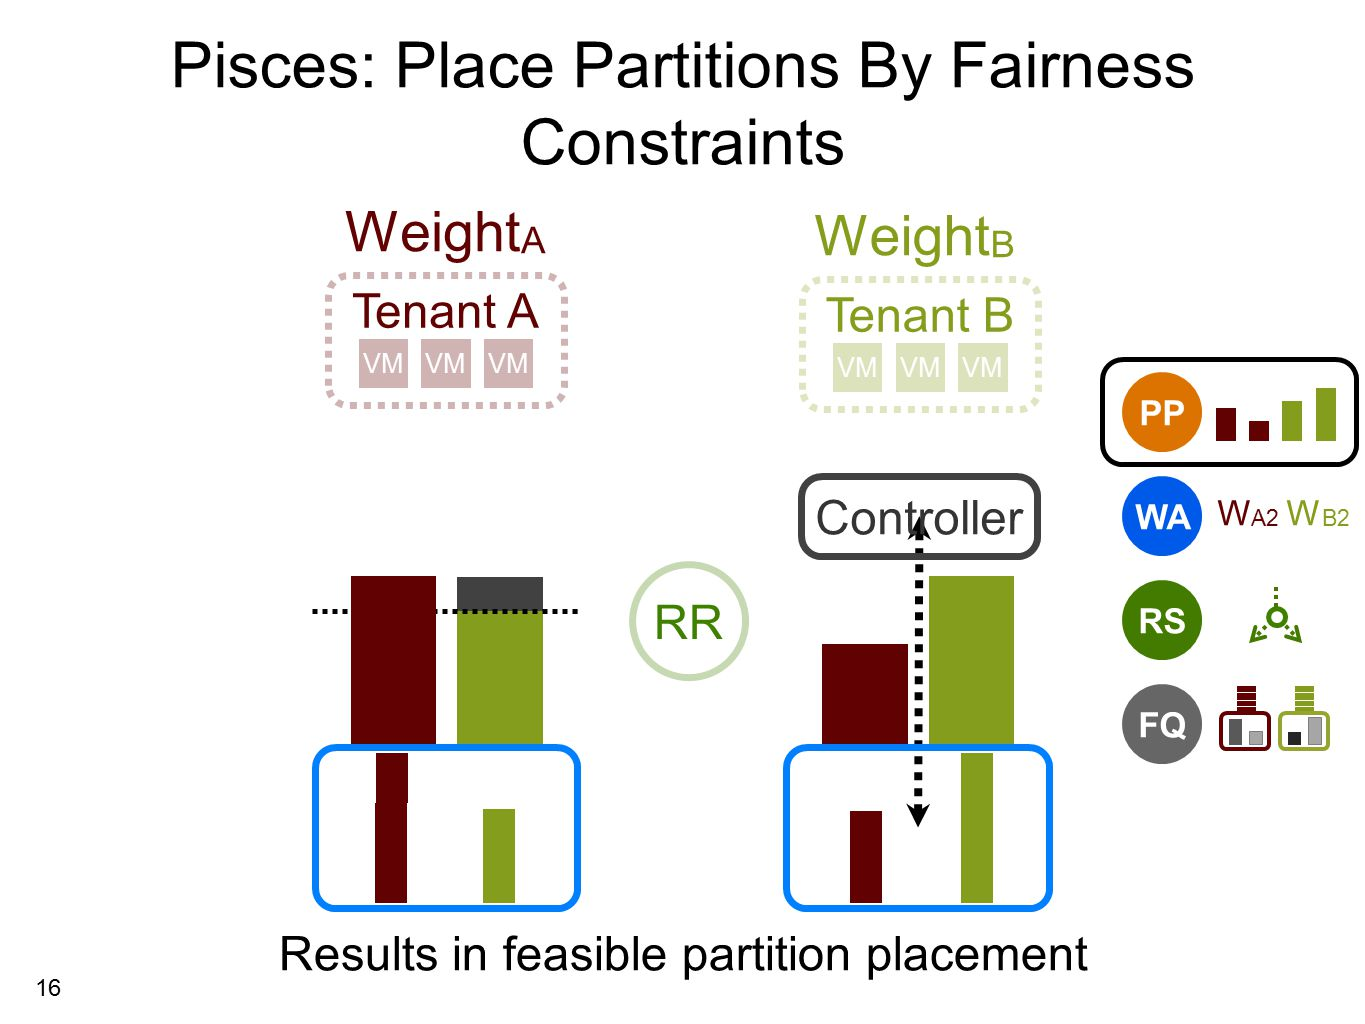 16 Pisces: Place Partitions By Fairness Constraints Tenant A Tenant B VM Weight A Weight B PP Results in feasible partition placement RS FQ WA W A2 W B2 RR Controller